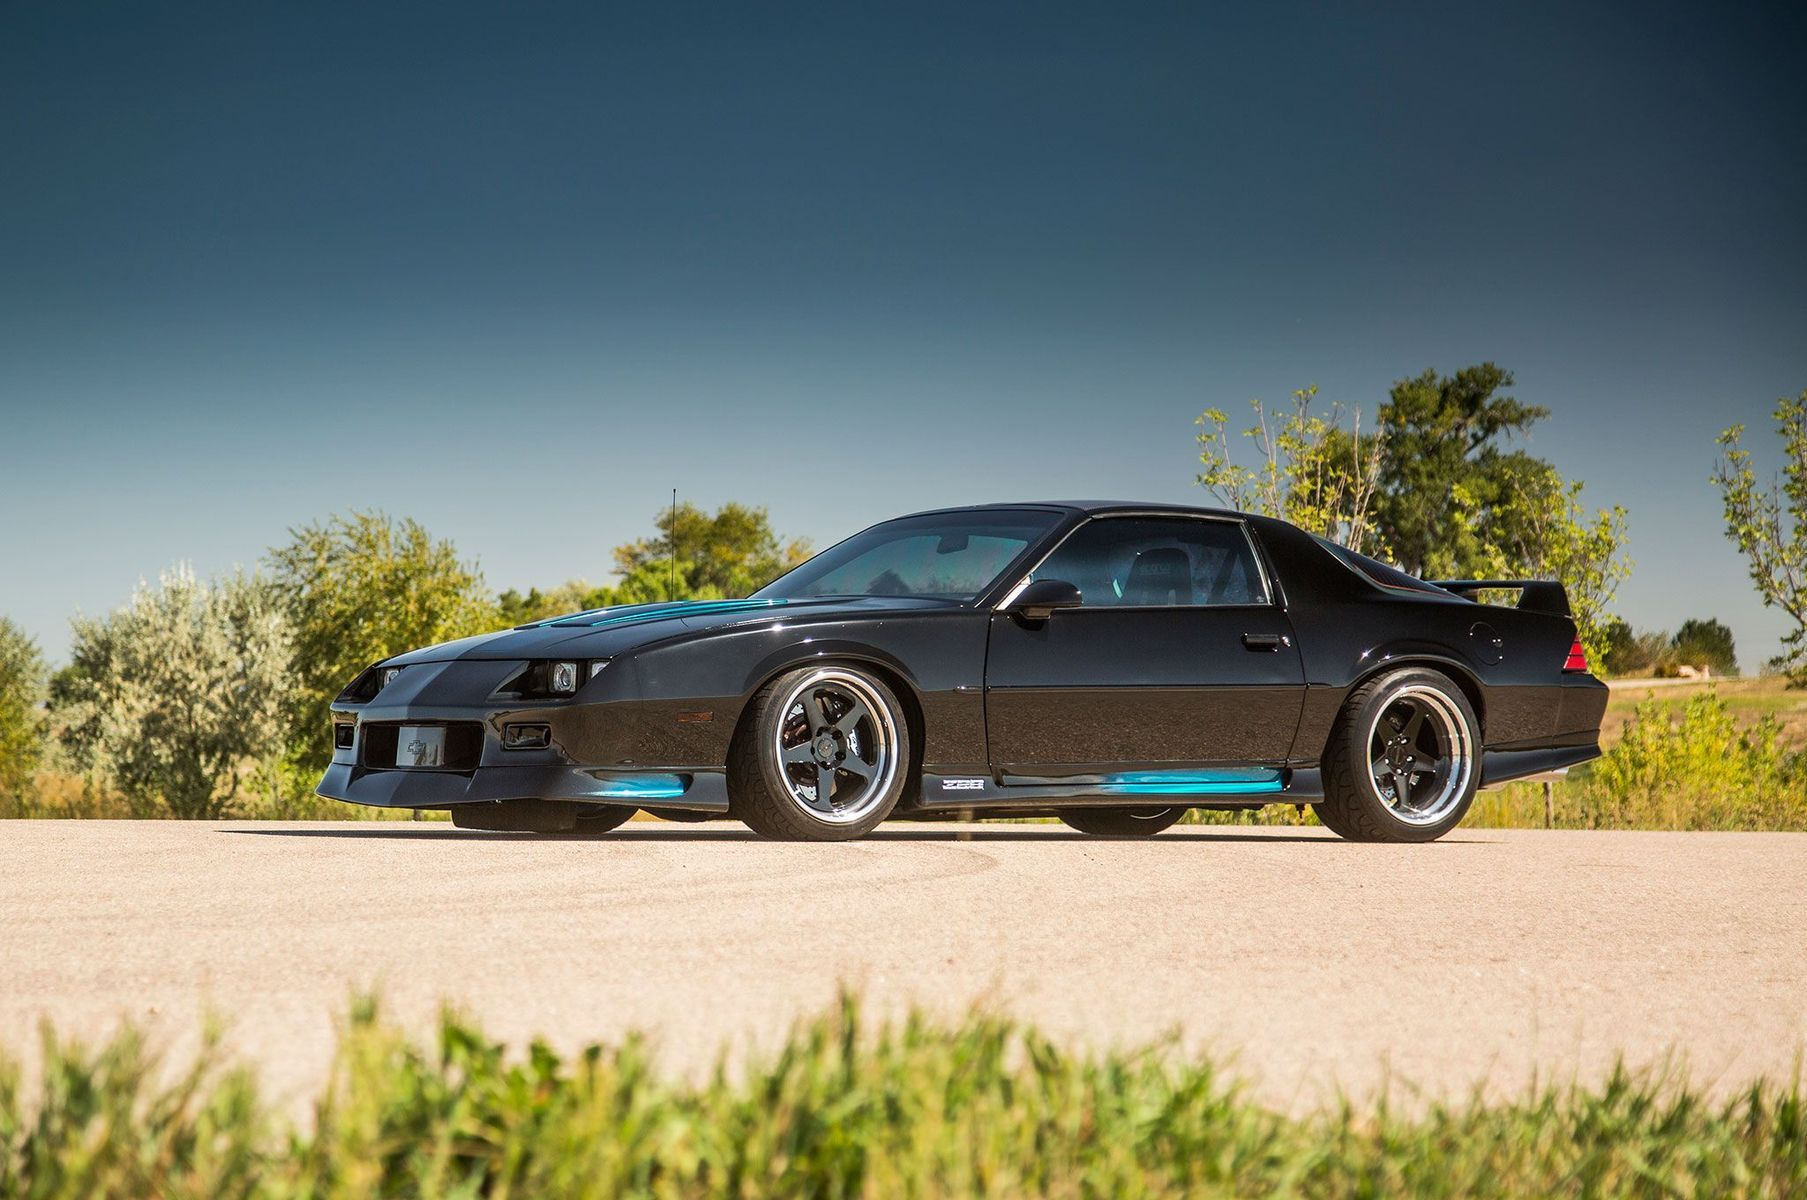 1991 Chevrolet Camaro | Brandon Pursley's 1991 Camaro Z28 on Forgeline FF3 Wheels